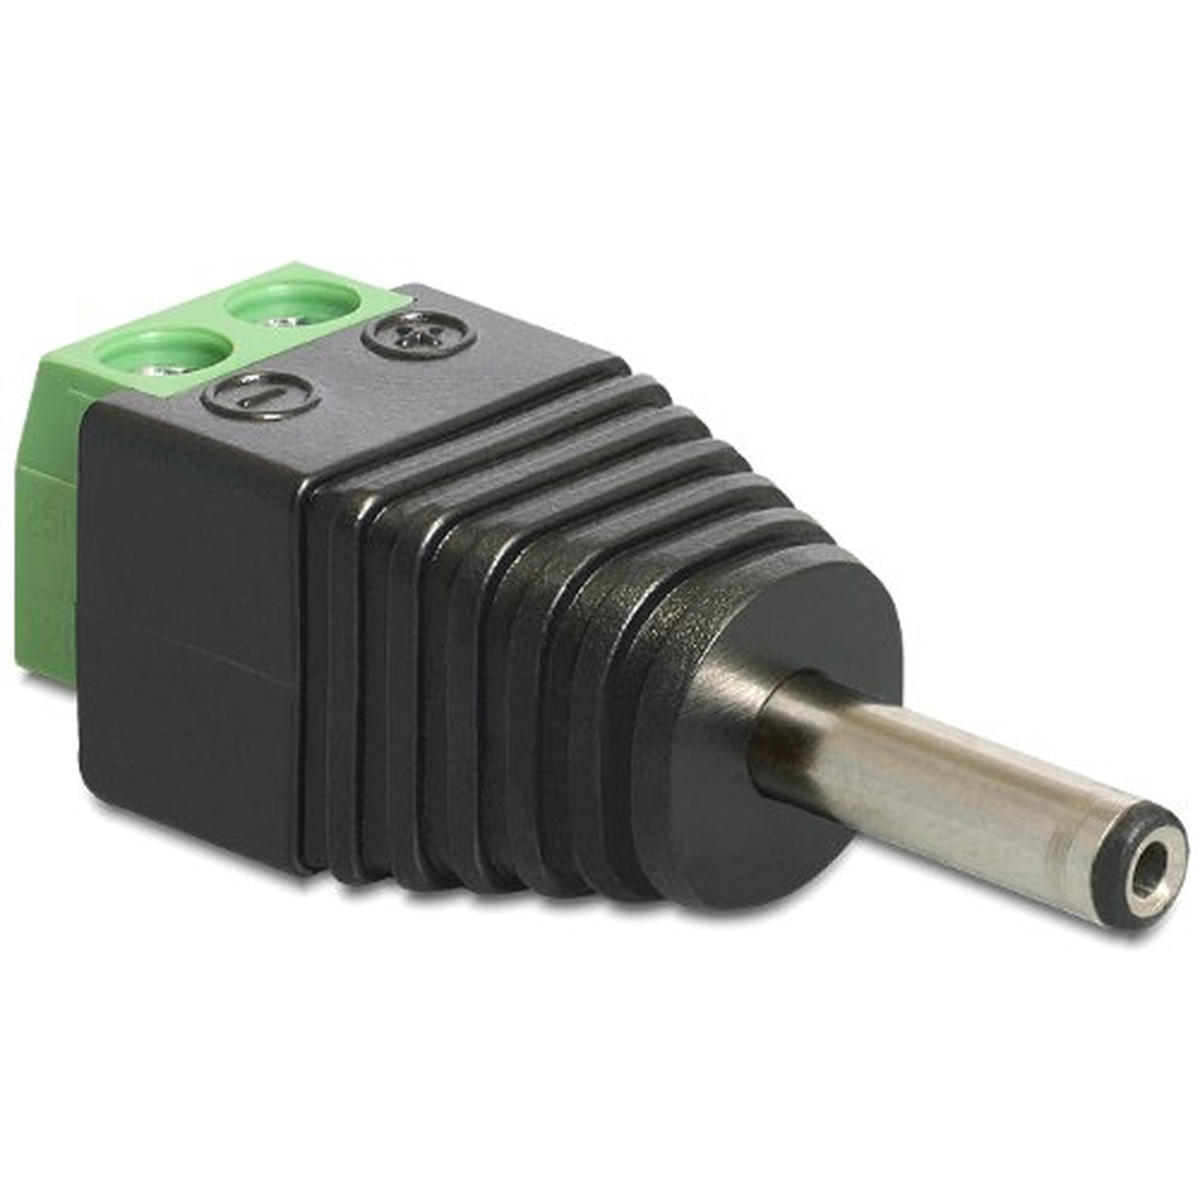 DeLOCK Adapter DC 1,3 x 3,5 mm Stecker > Terminalblock 2 Pin